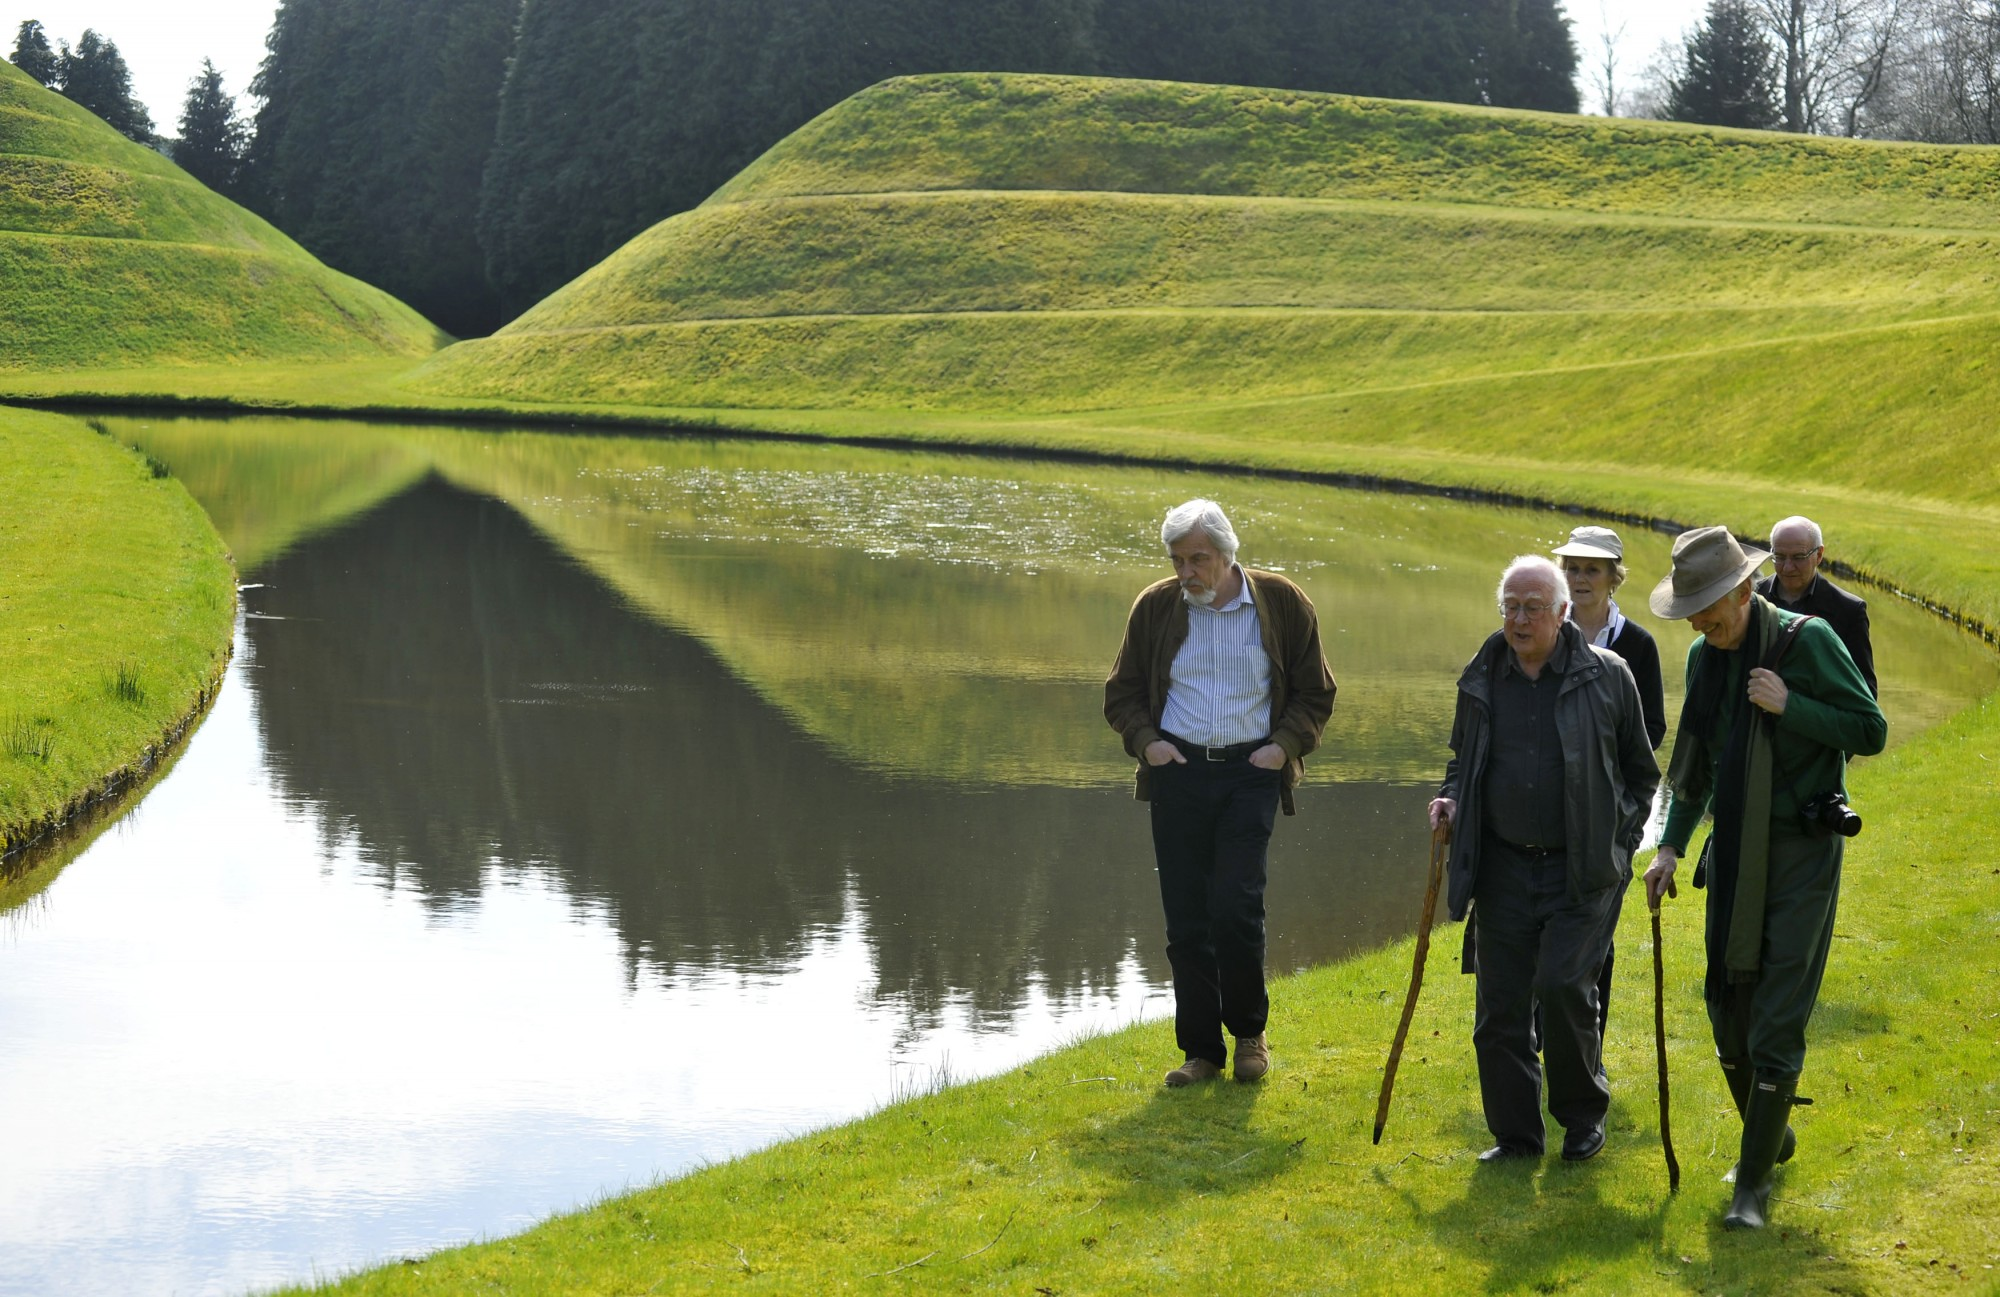 Left to right: Rolf Heuer, Peter Higgs and Charles Jencks walk alongside one of the garden's artificial lakes. Behind are James Gillies and Alan Walker. In the background on the left is the 'double helix' mound.